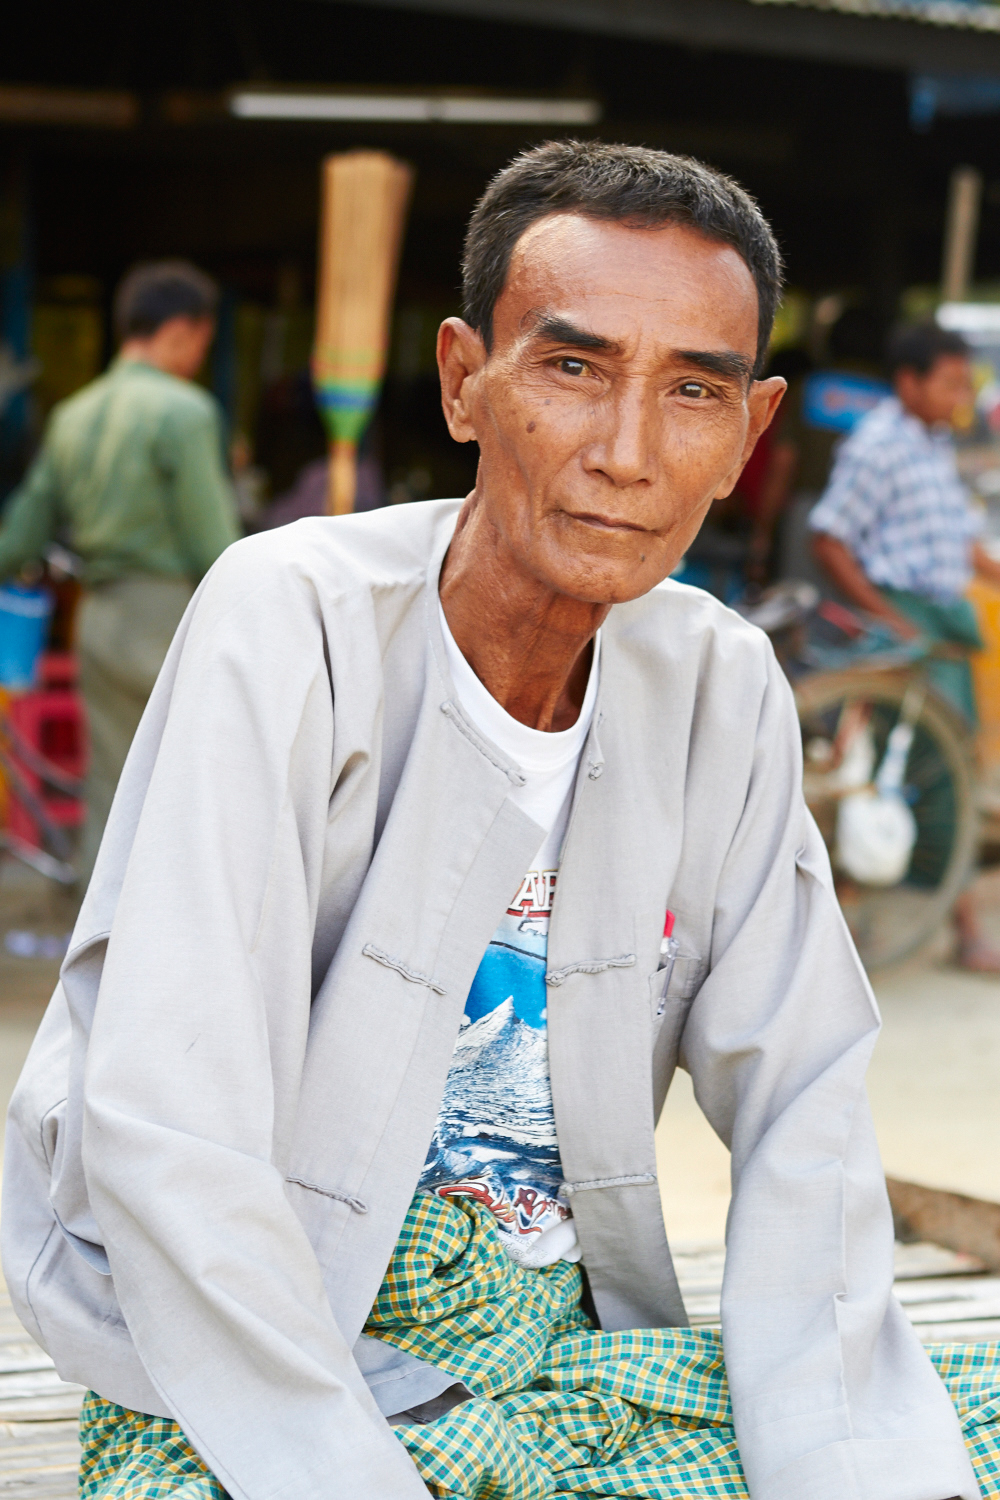 A man with great style in Nyaung Shwe